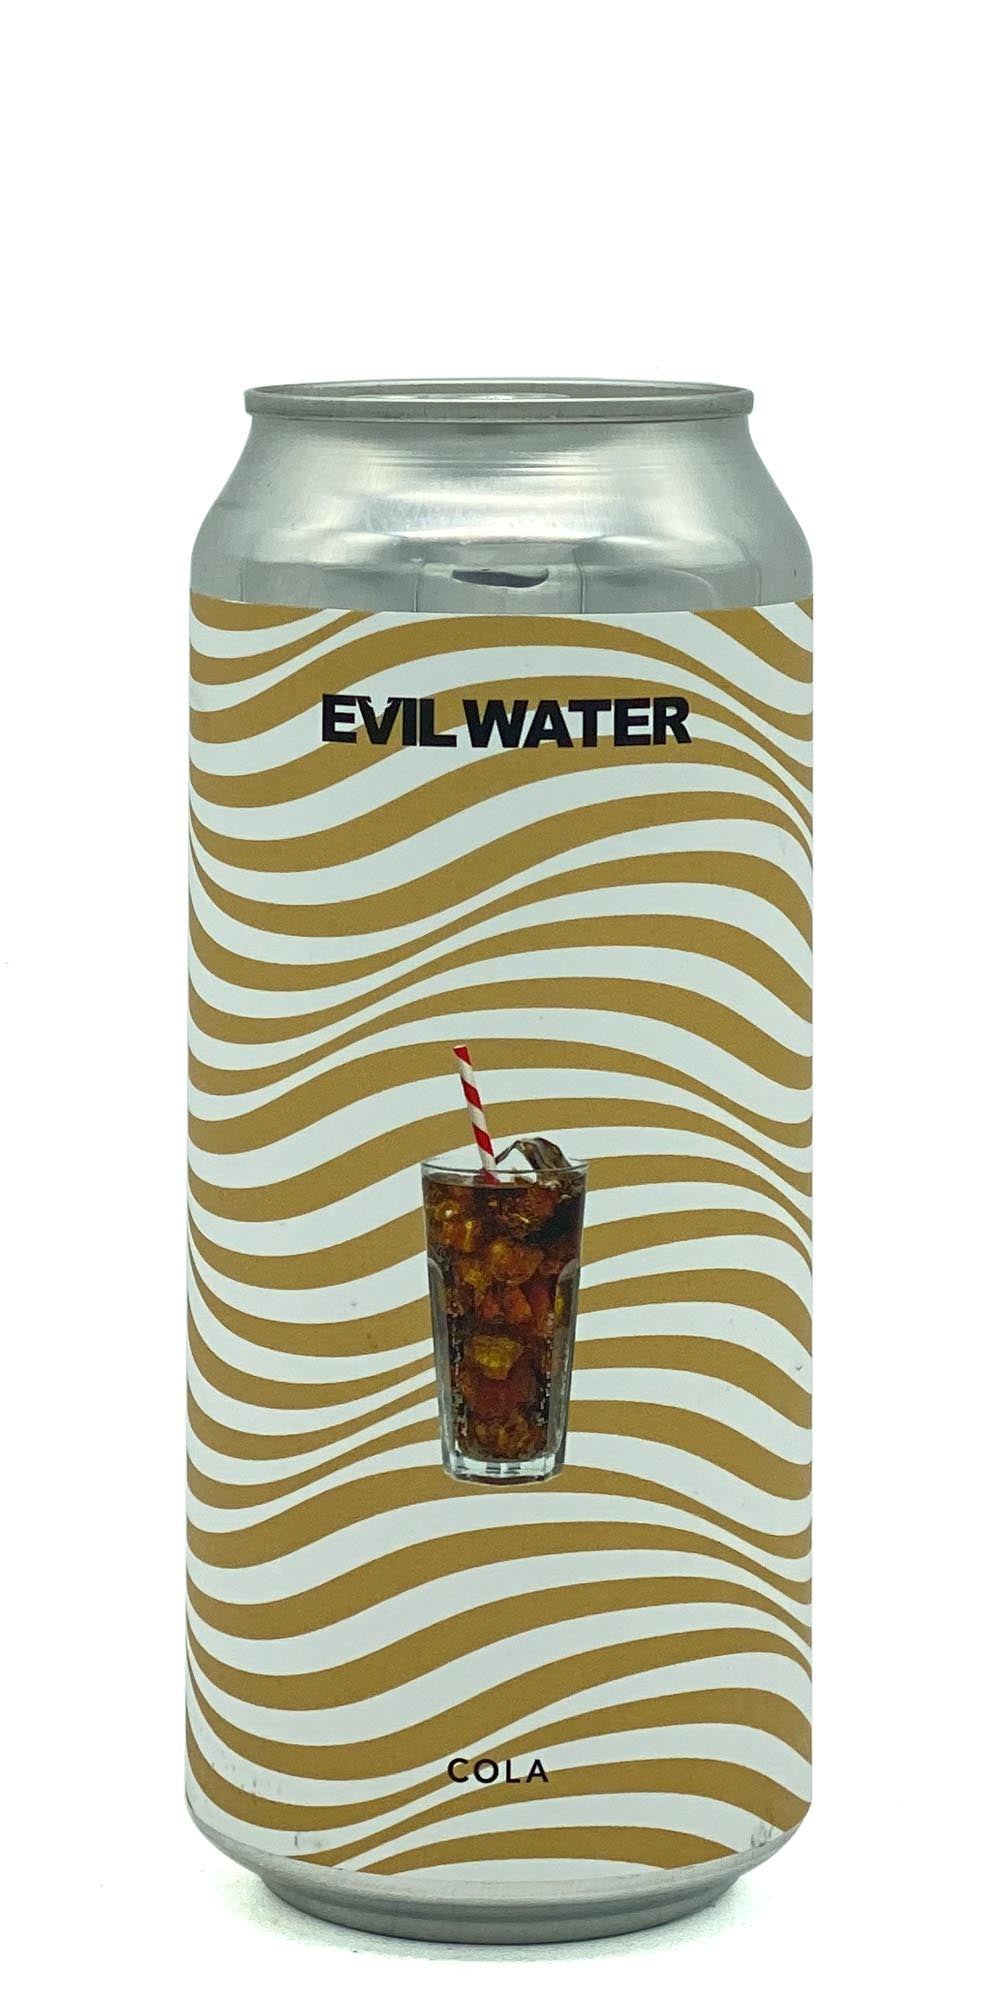 Evil Water - Cola - Drikbeer - Order Craft Beer Online